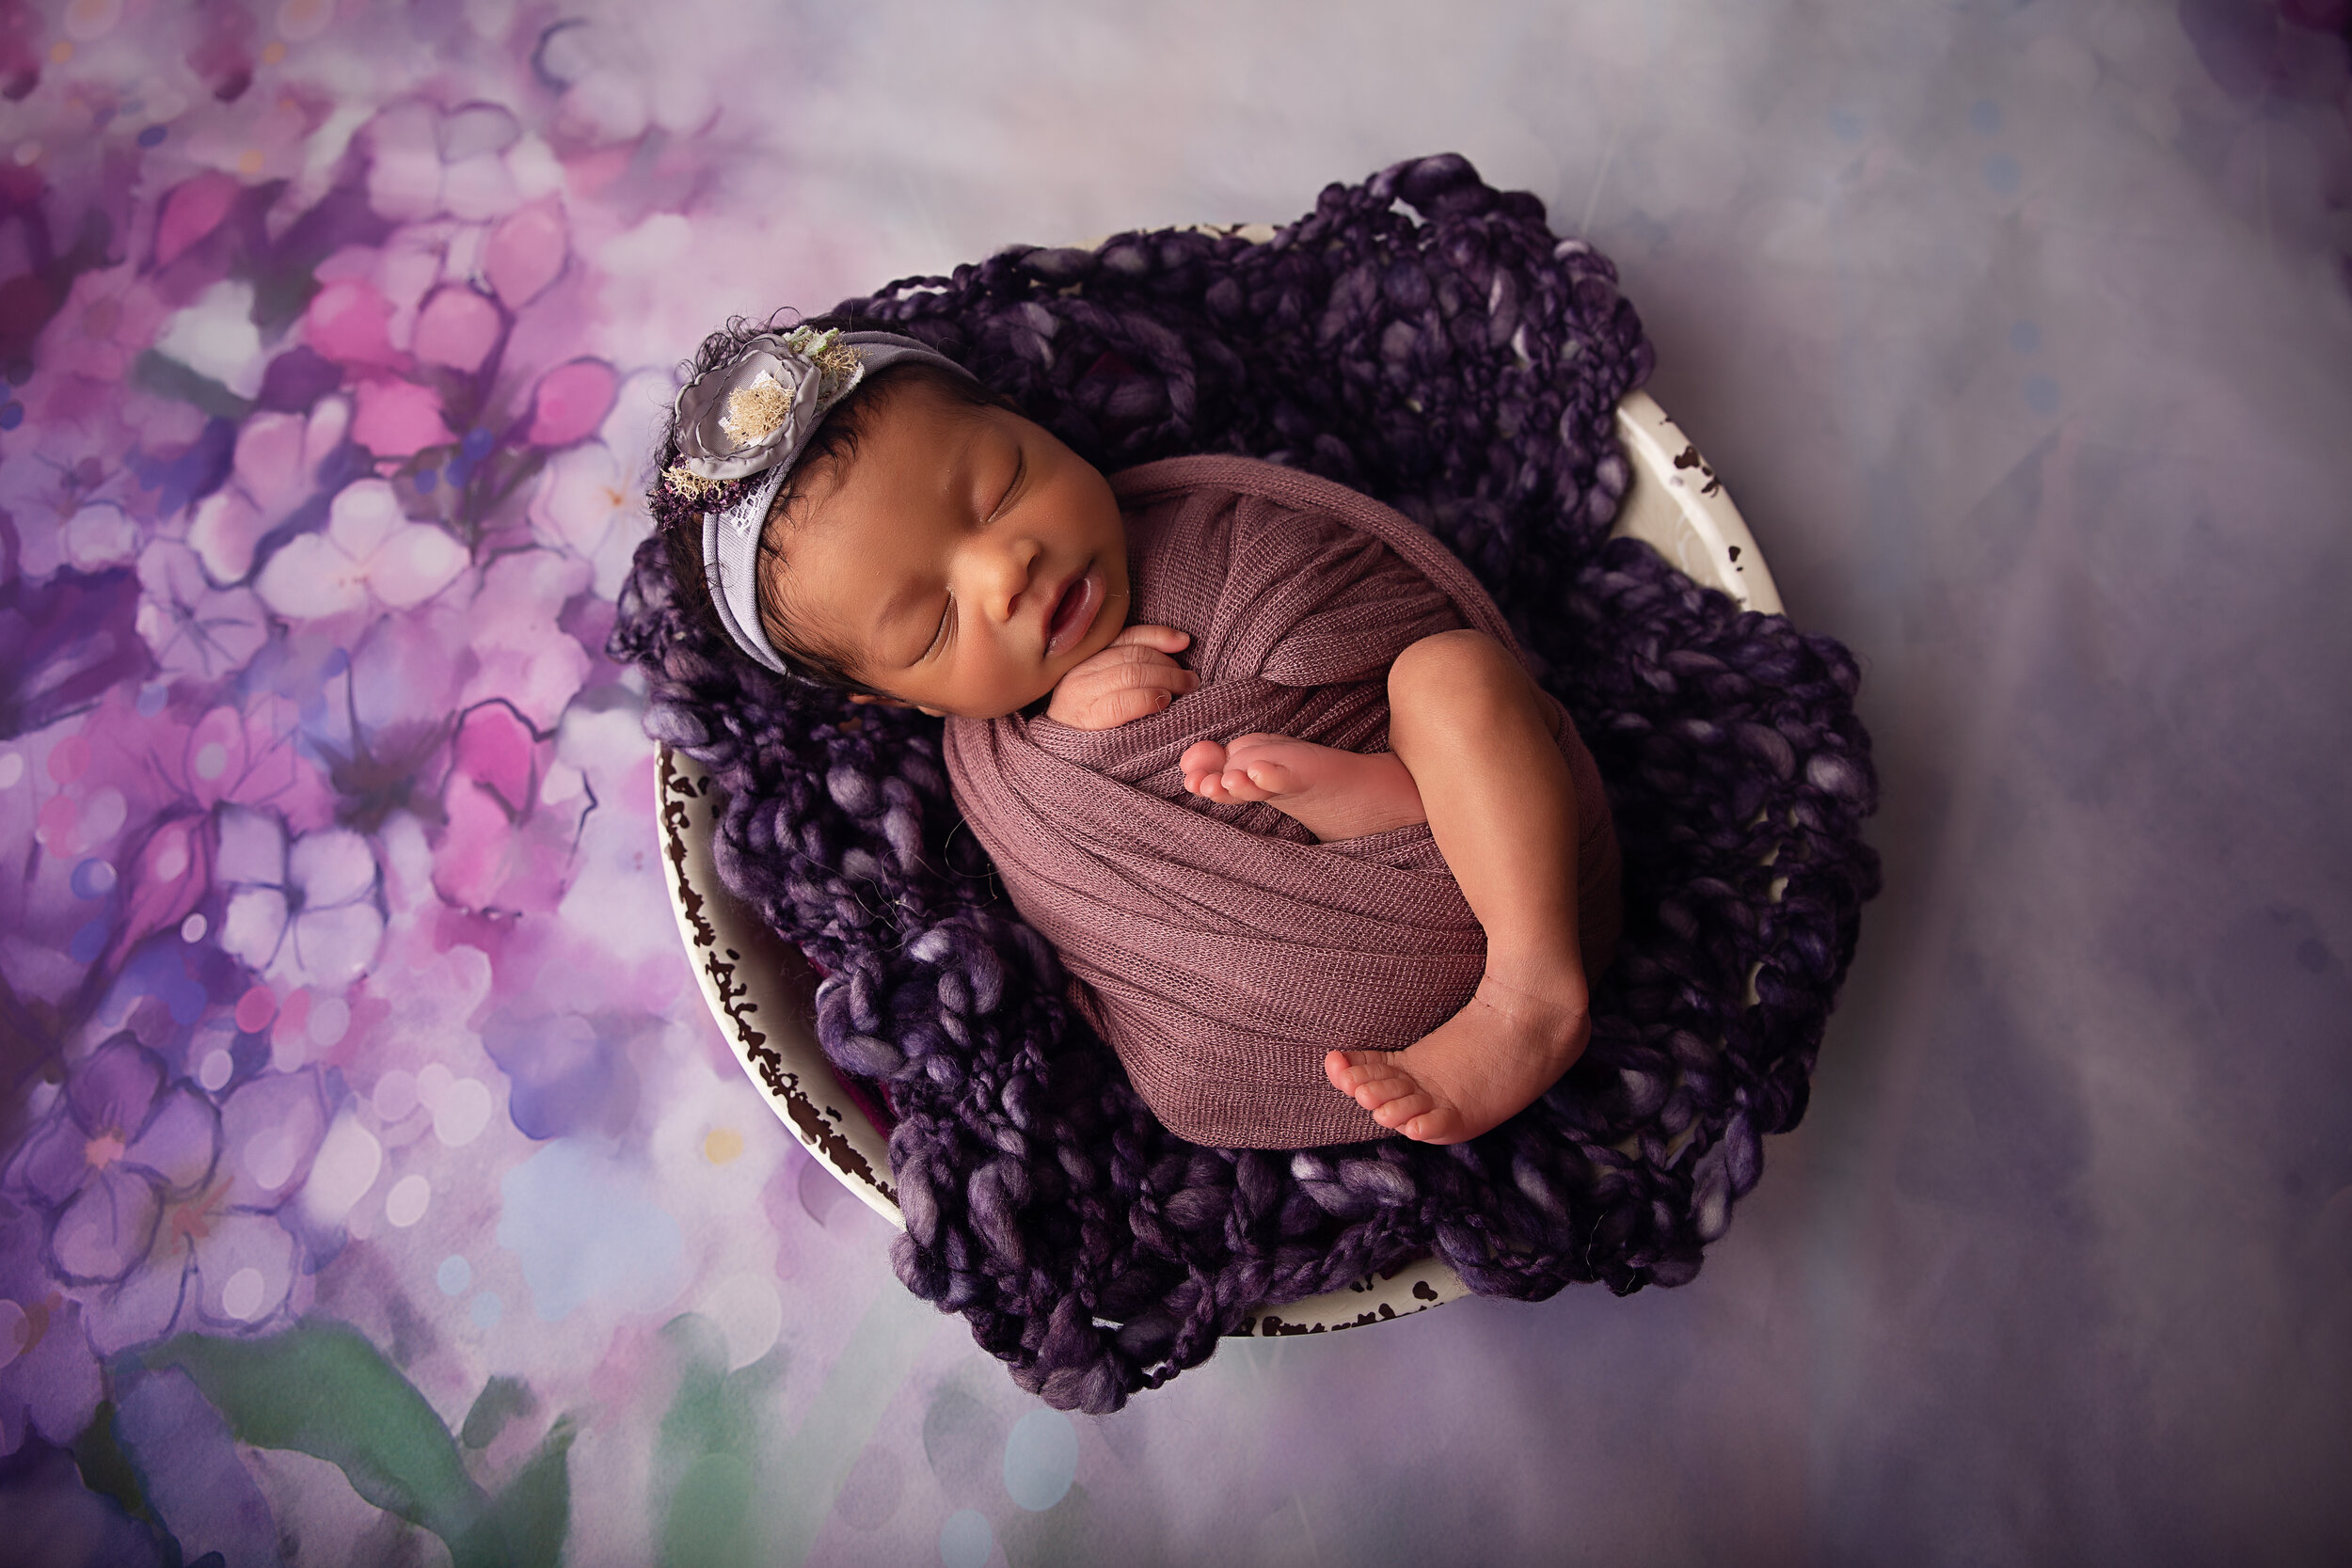 Newborn Baby Girl Purple Florals In Bowl.jpg